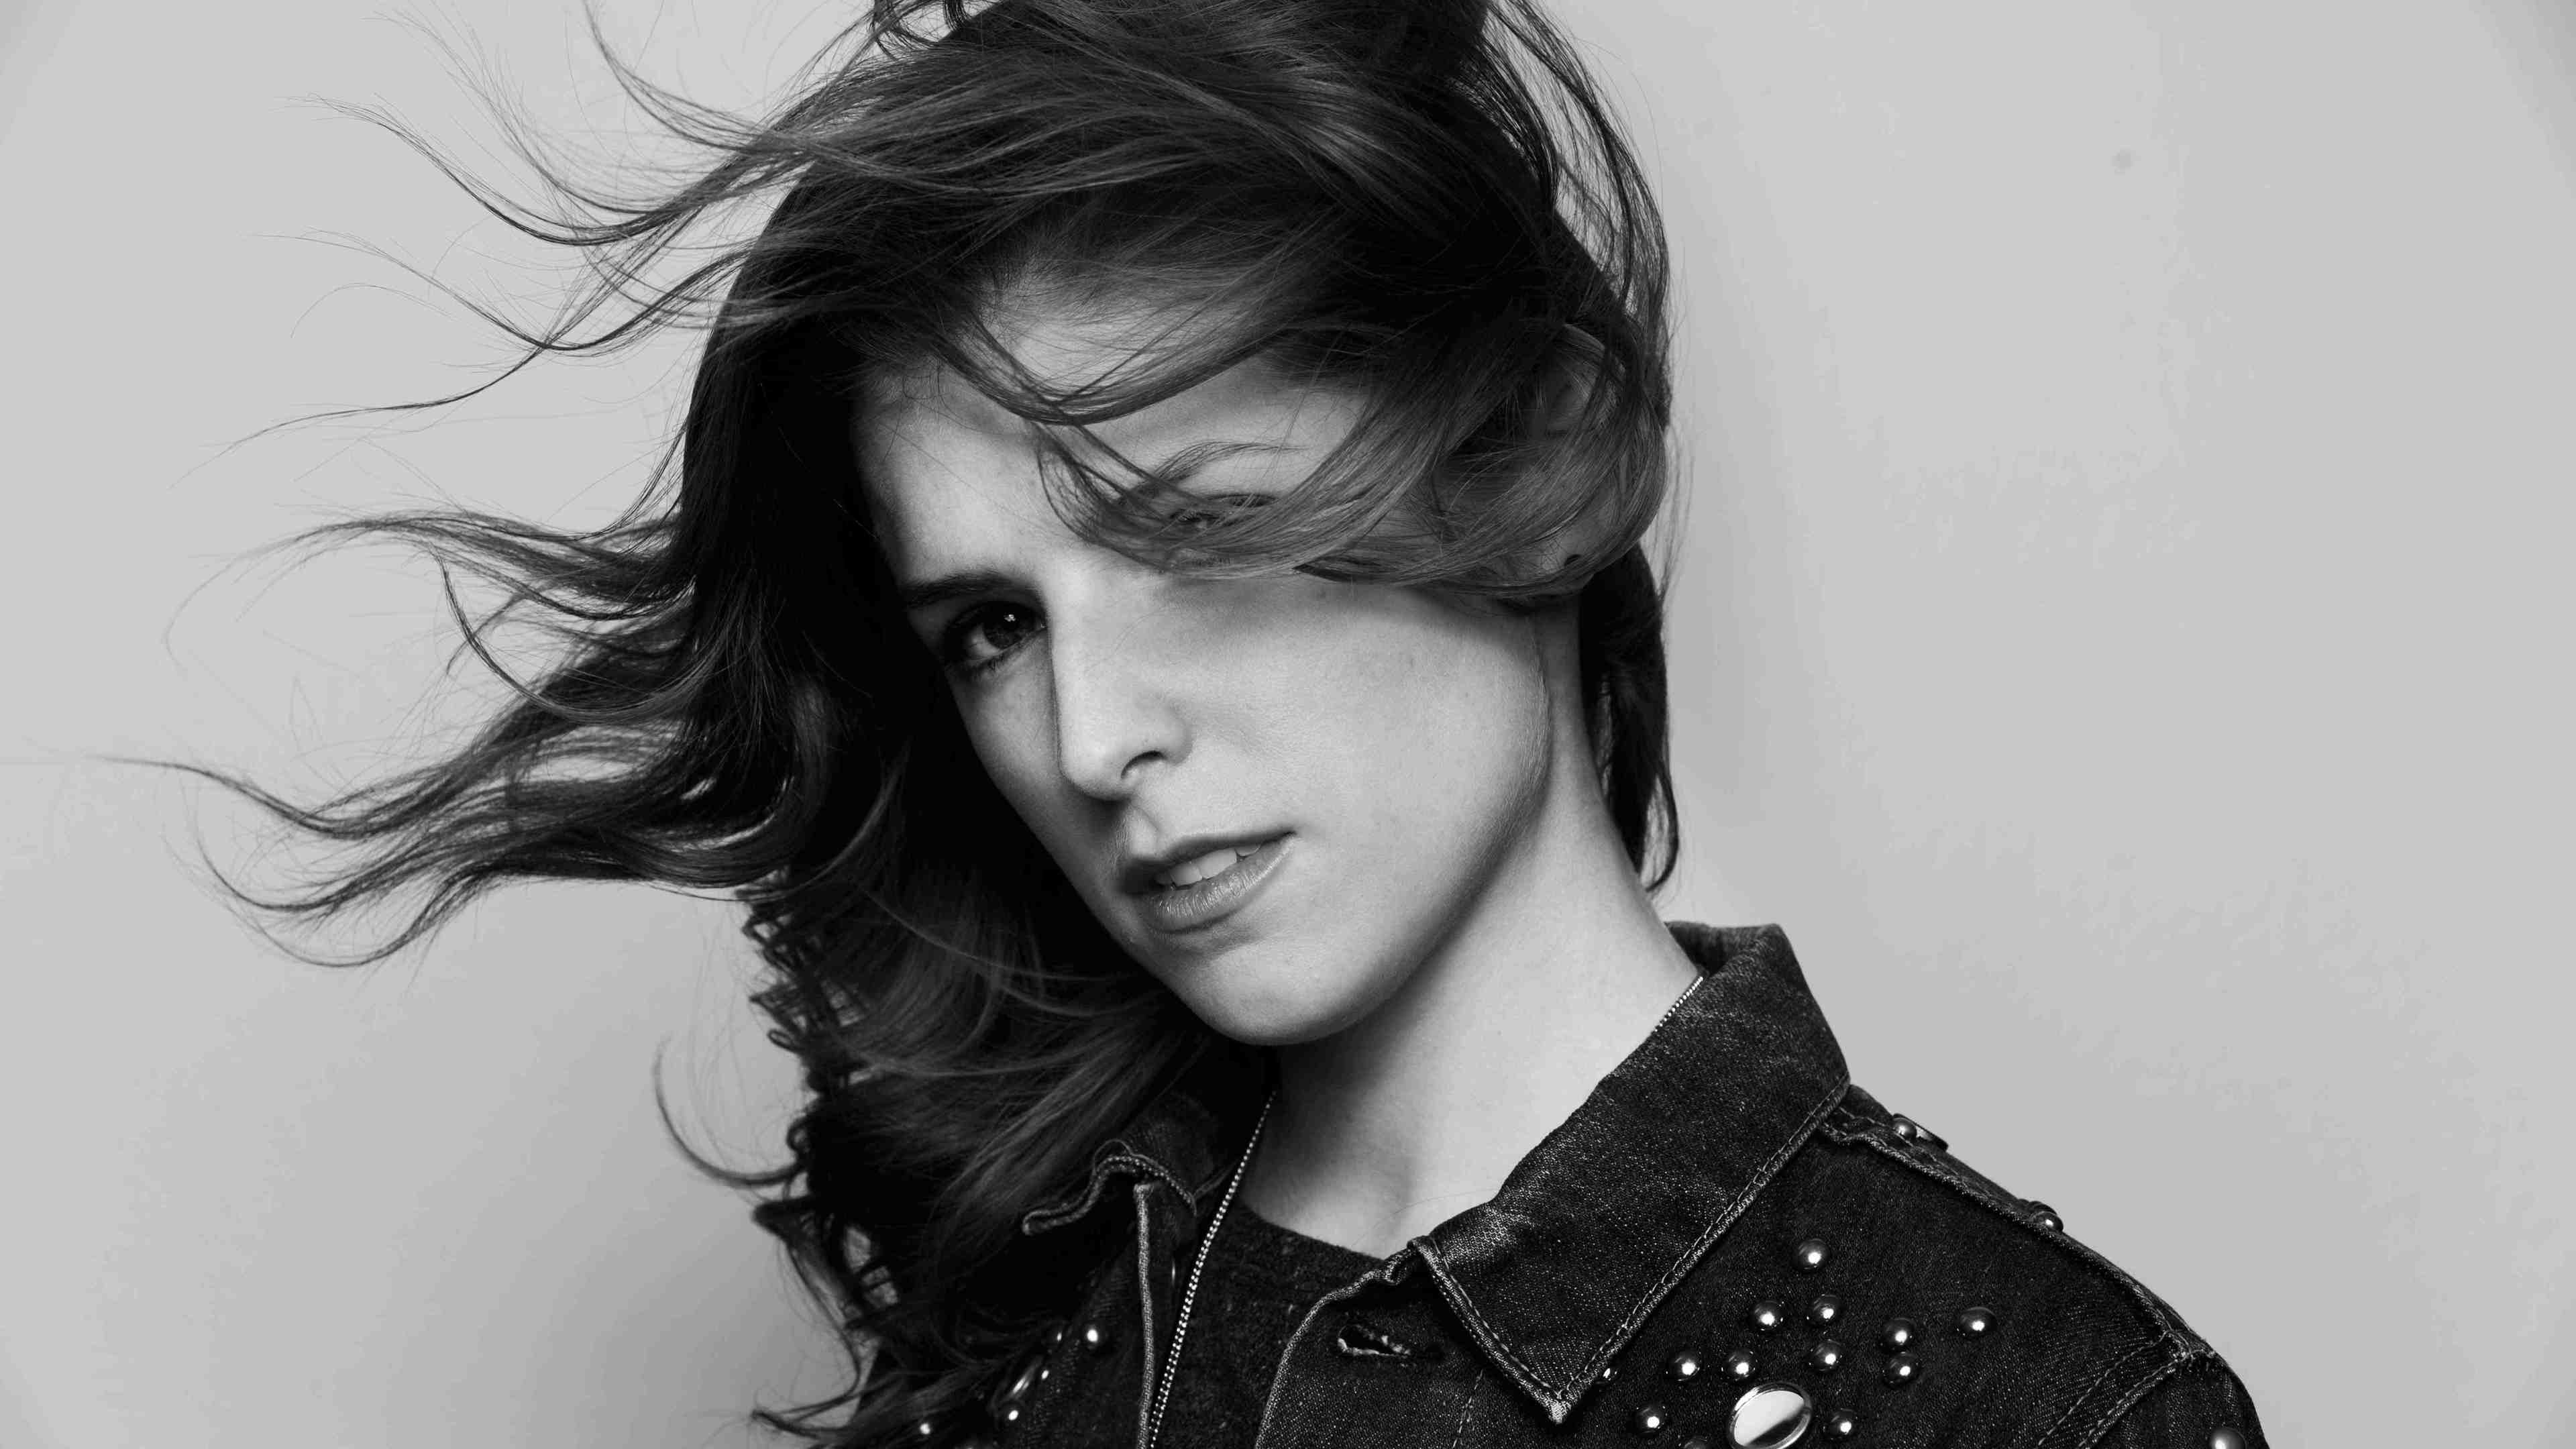 anna kendrick black and white 1536862710 - Anna Kendrick Black And White - monochrome wallpapers, hd-wallpapers, girls wallpapers, dianna agron wallpapers, celebrities wallpapers, black and white wallpapers, 5k wallpapers, 4k-wallpapers